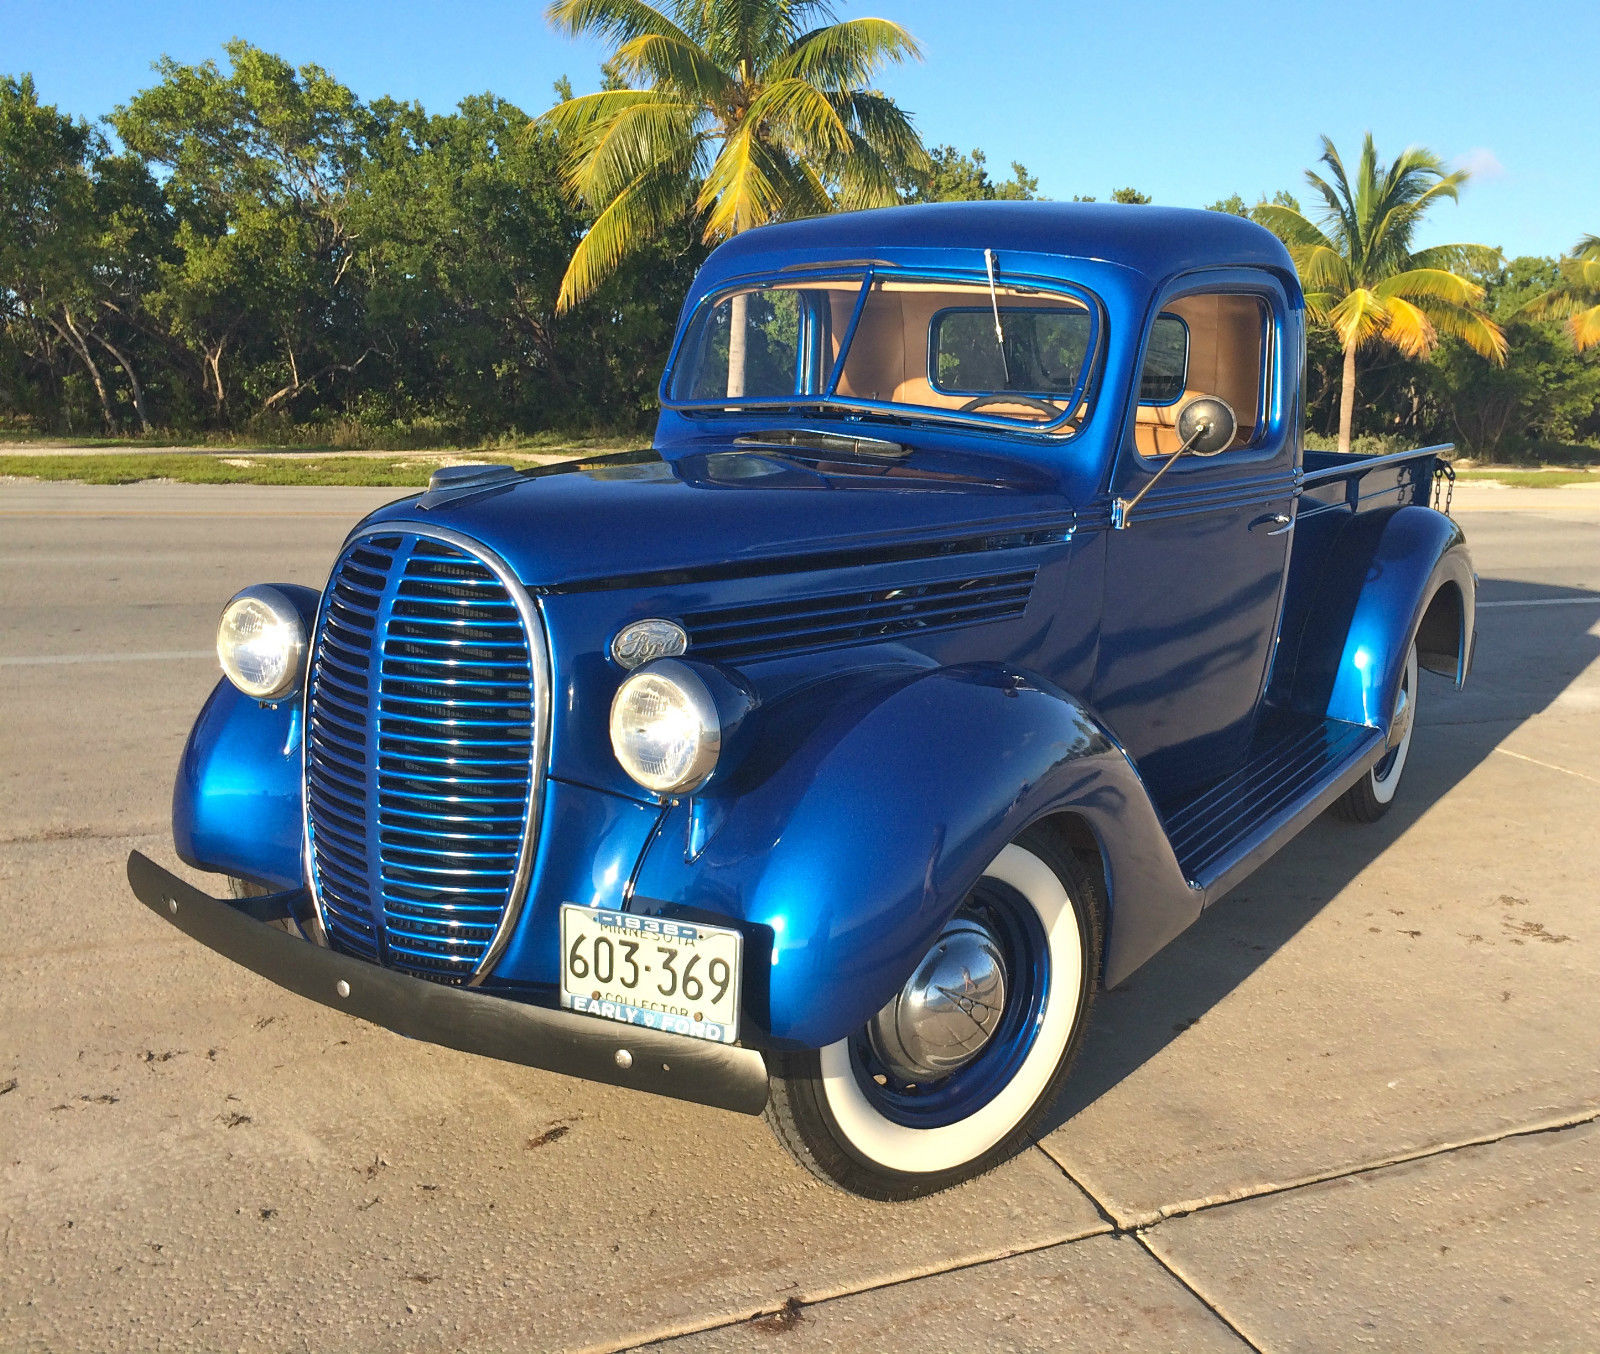 1938 ford pickup model 85 ford electric blue original for Ford truck motors for sale